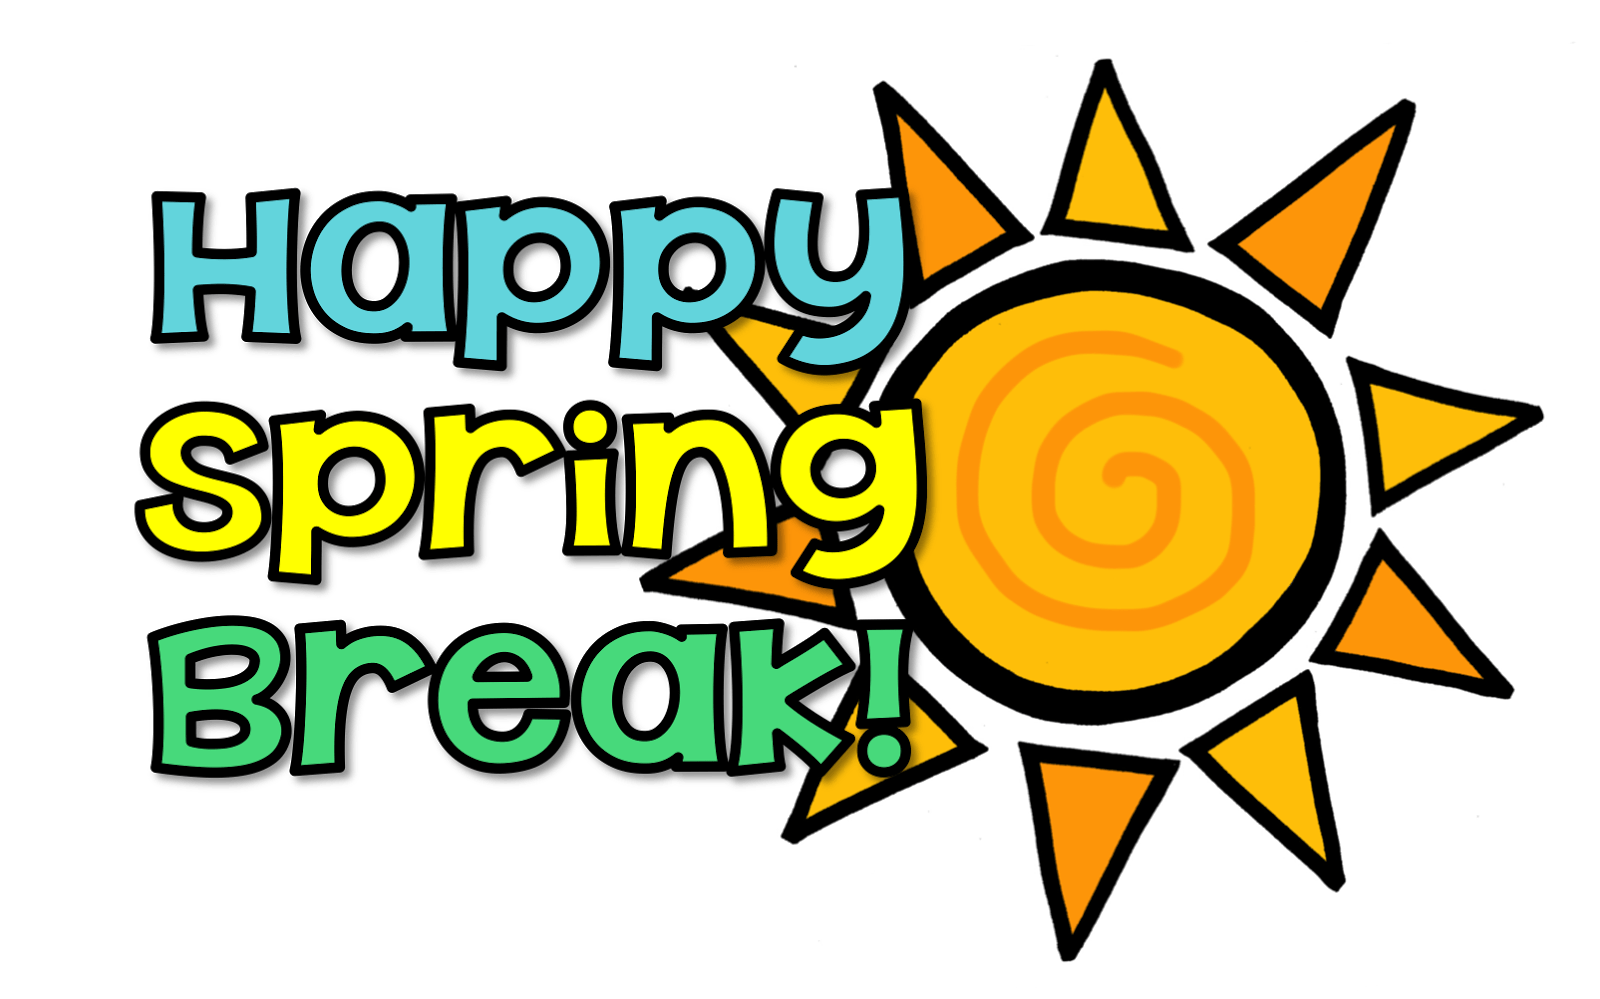 clipart transparent stock Spring cilpart beautiful idea. Break clipart